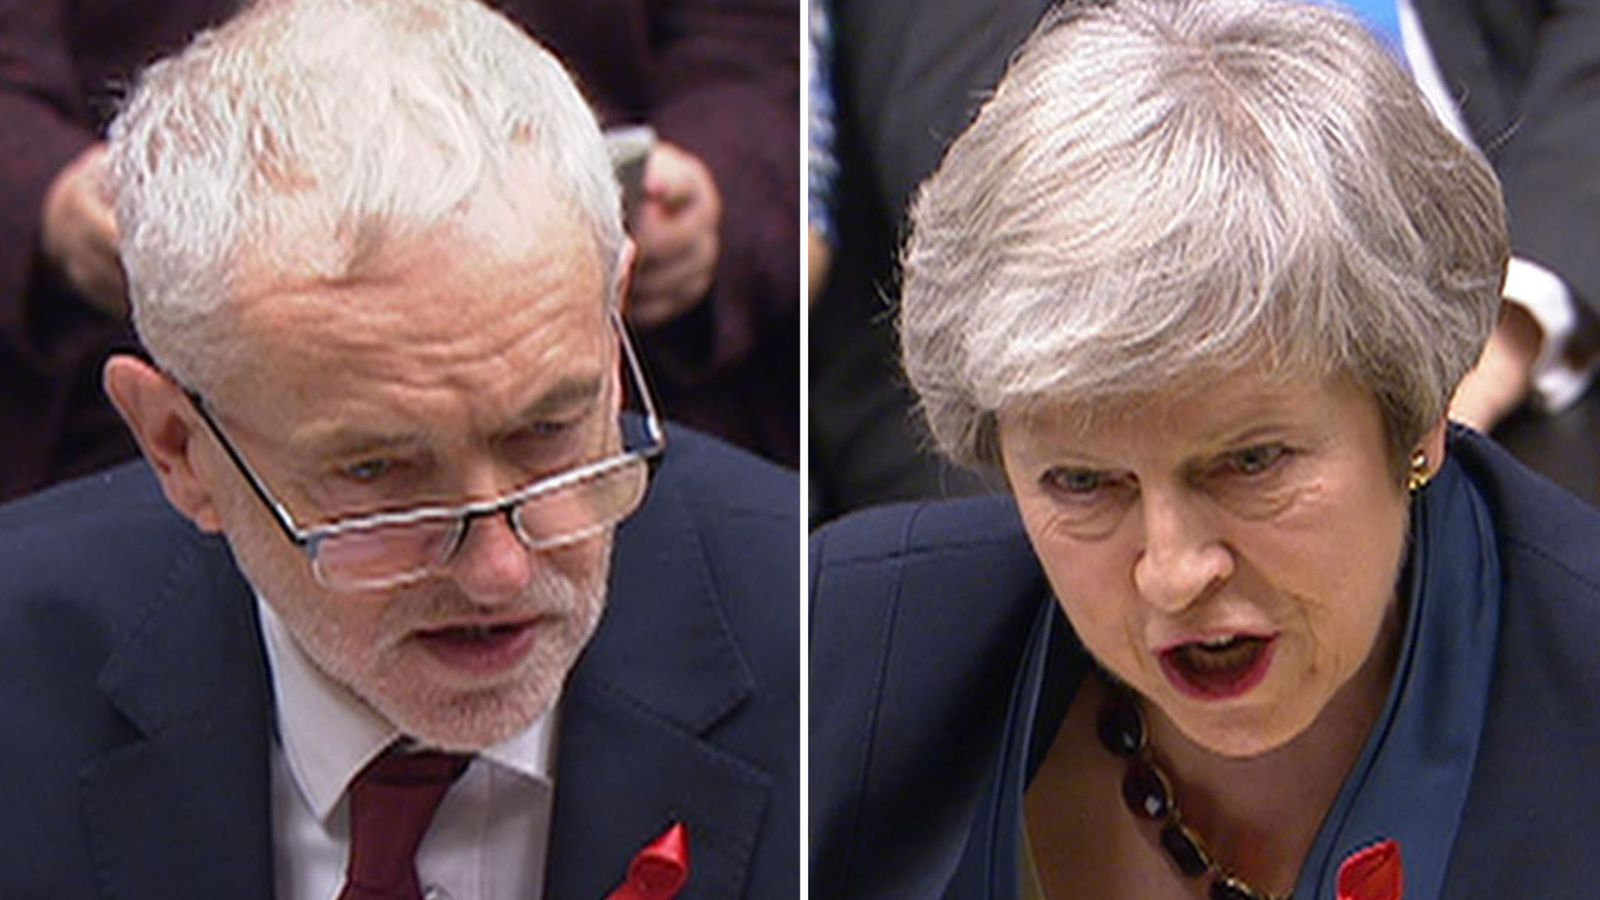 May and Corbyn agree to live TV debate (but on different channels)